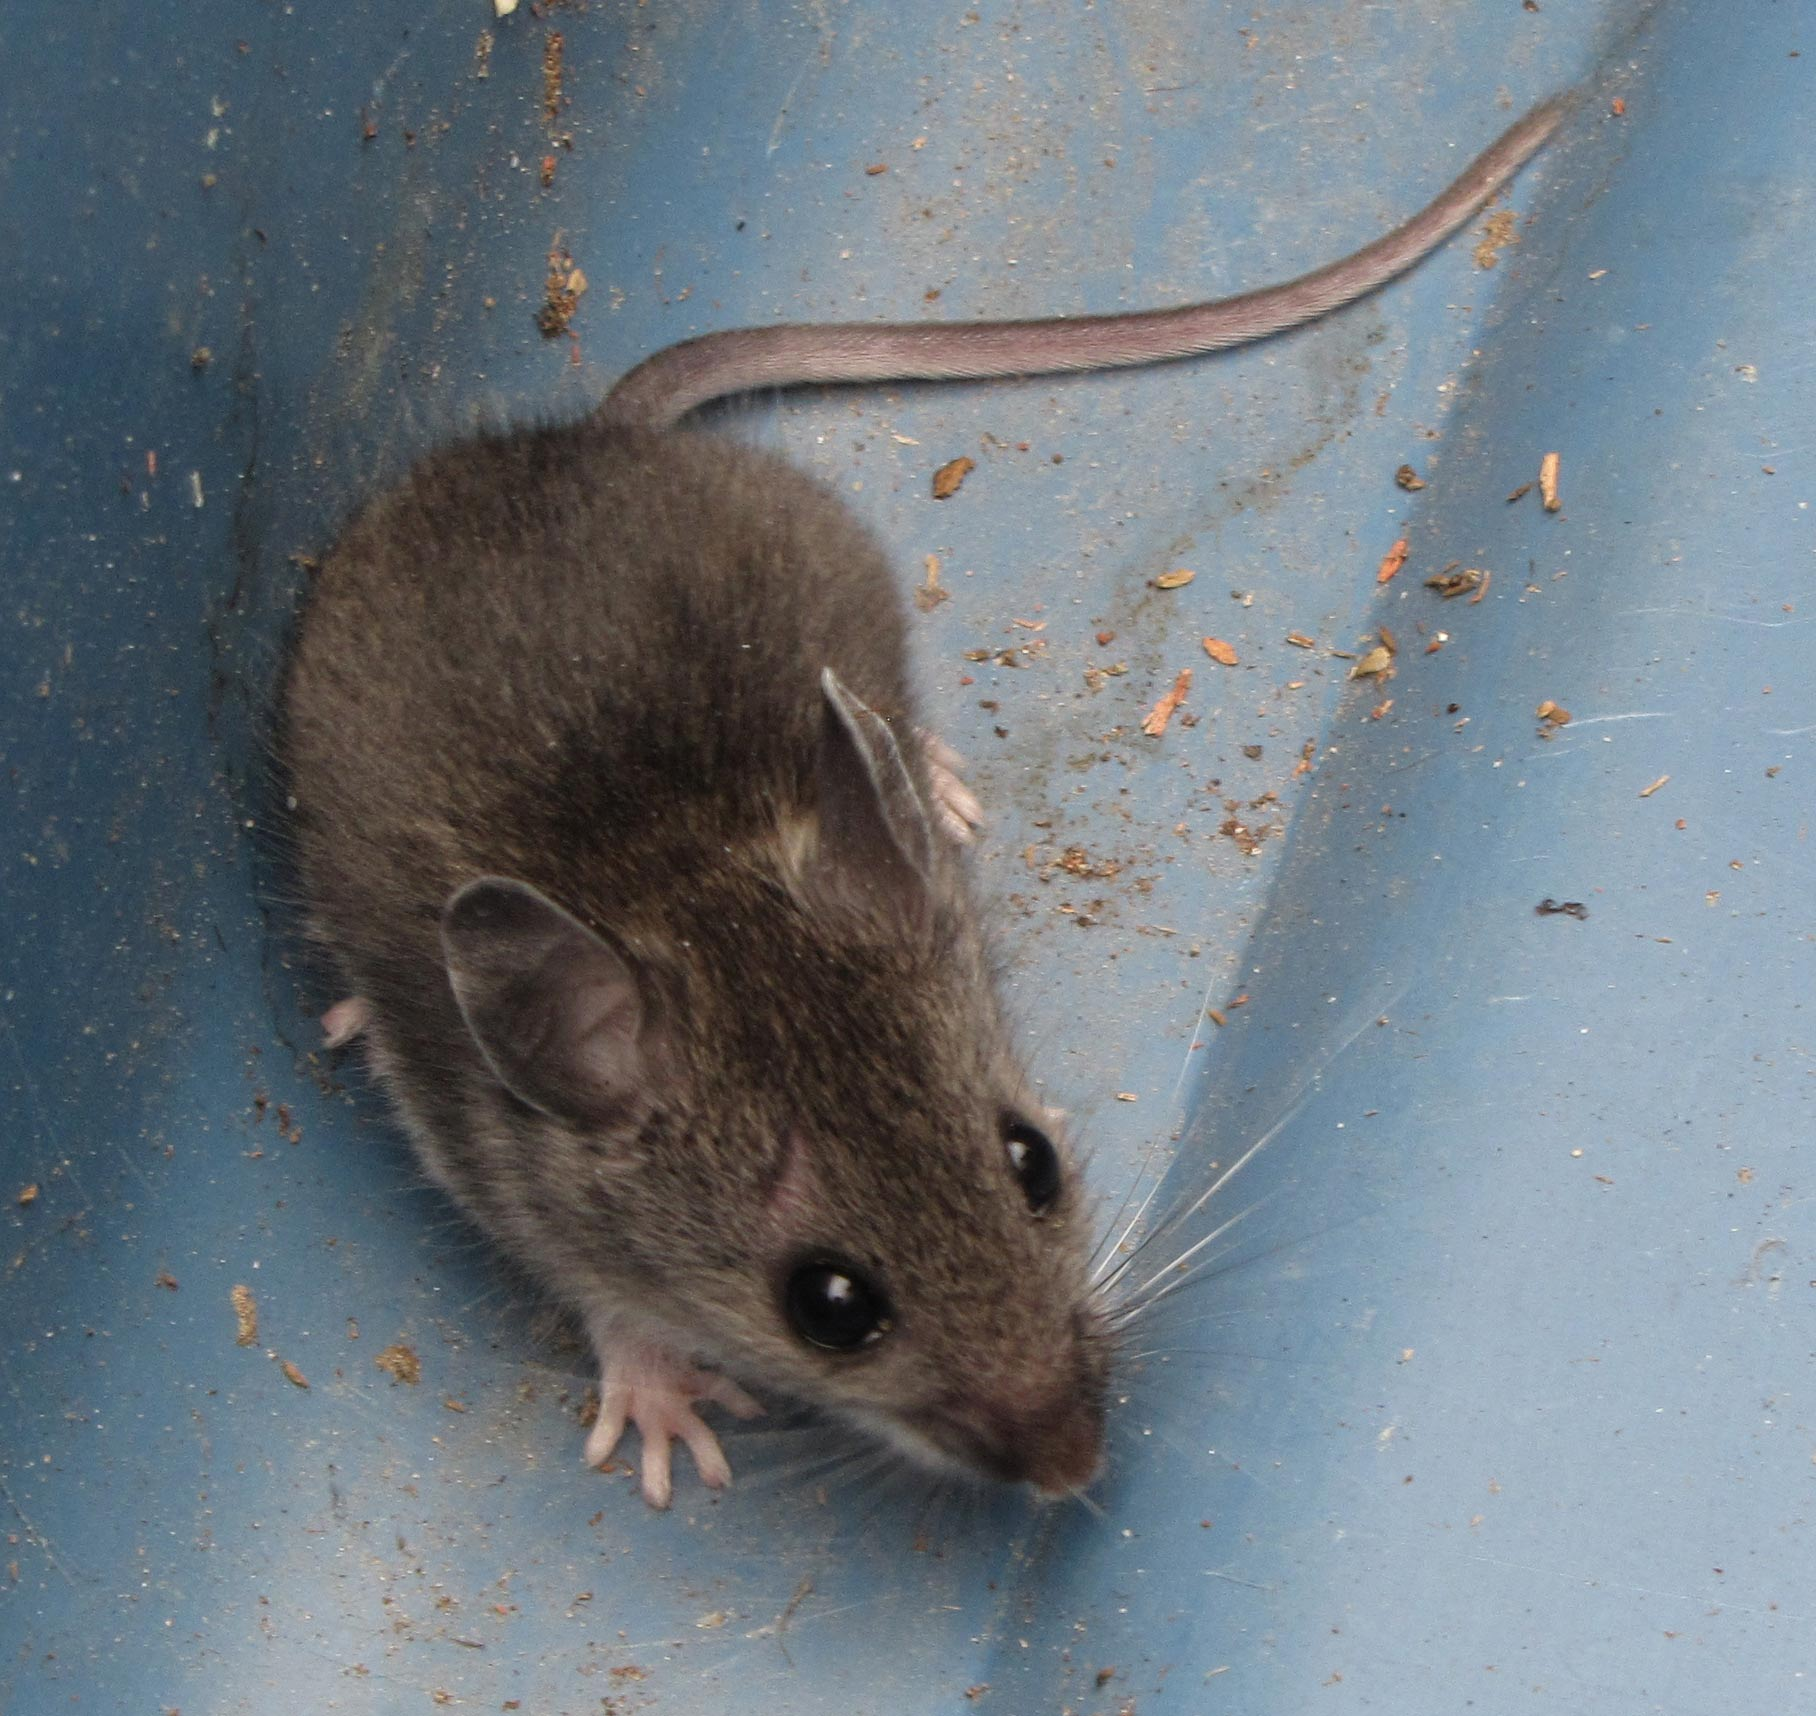 House mouse vs deer mouse images - House and home design